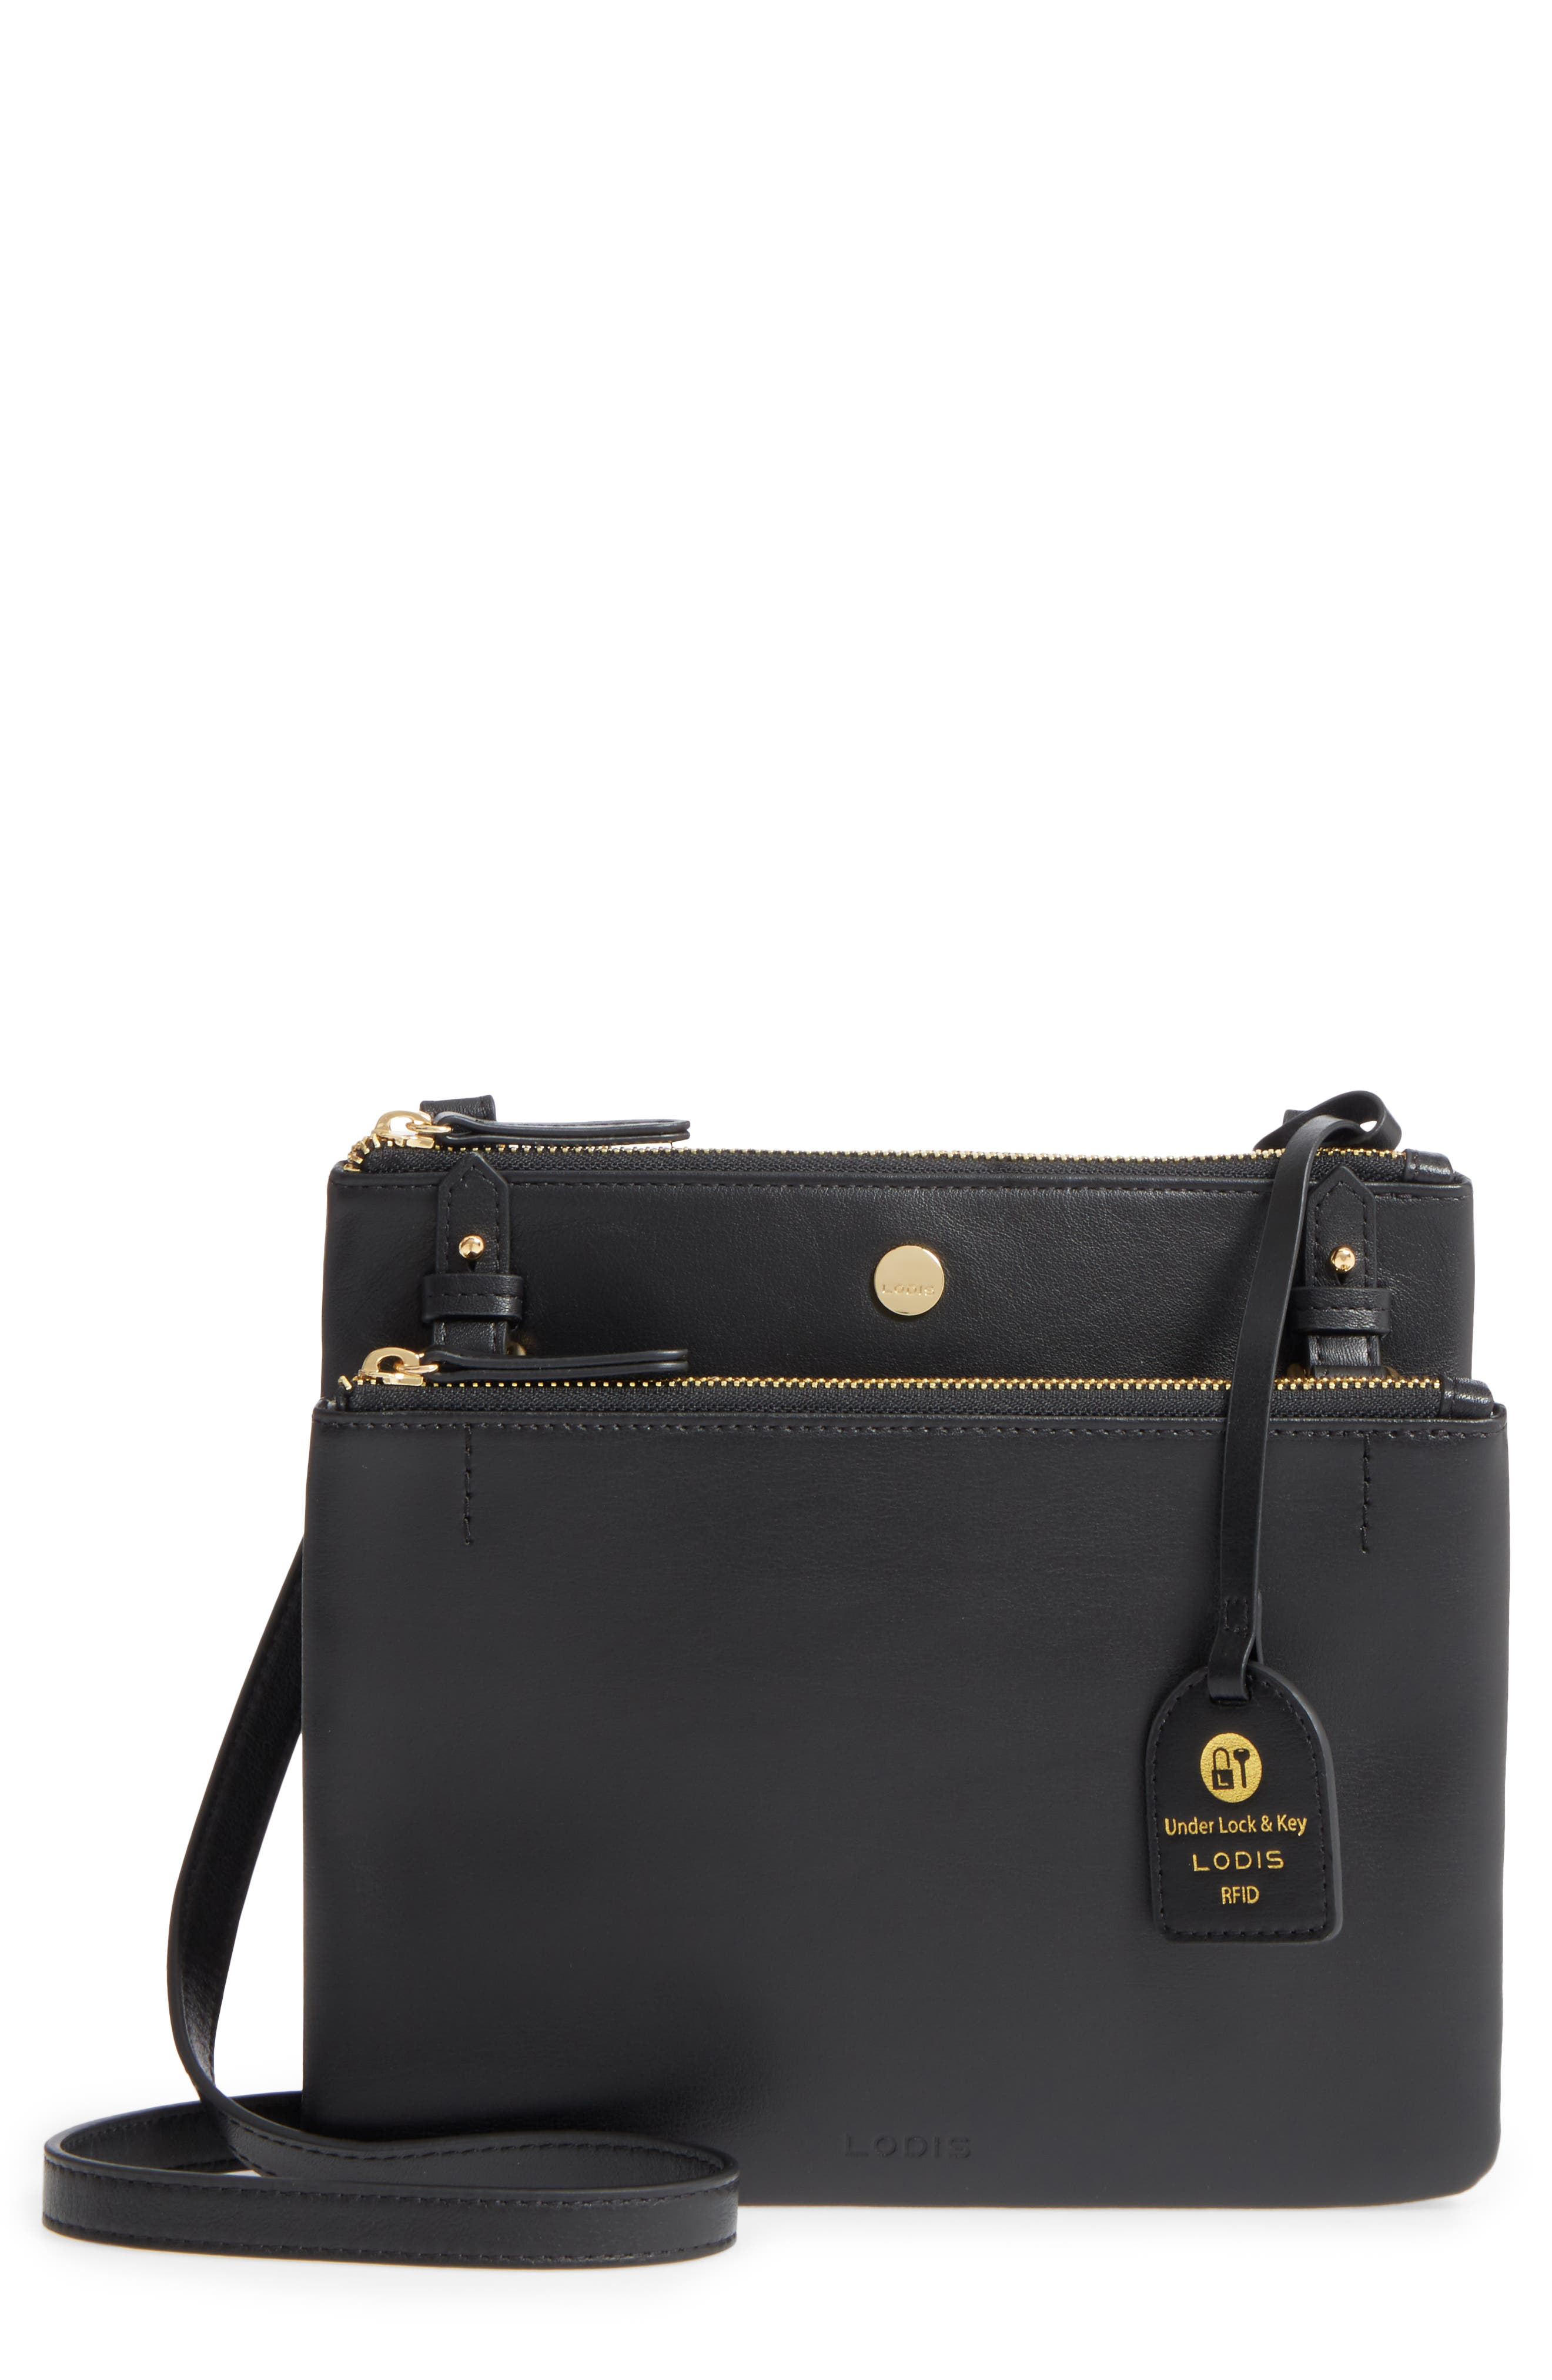 LODIS Los Angeles Downtown Latisha RFID Leather Crossbody